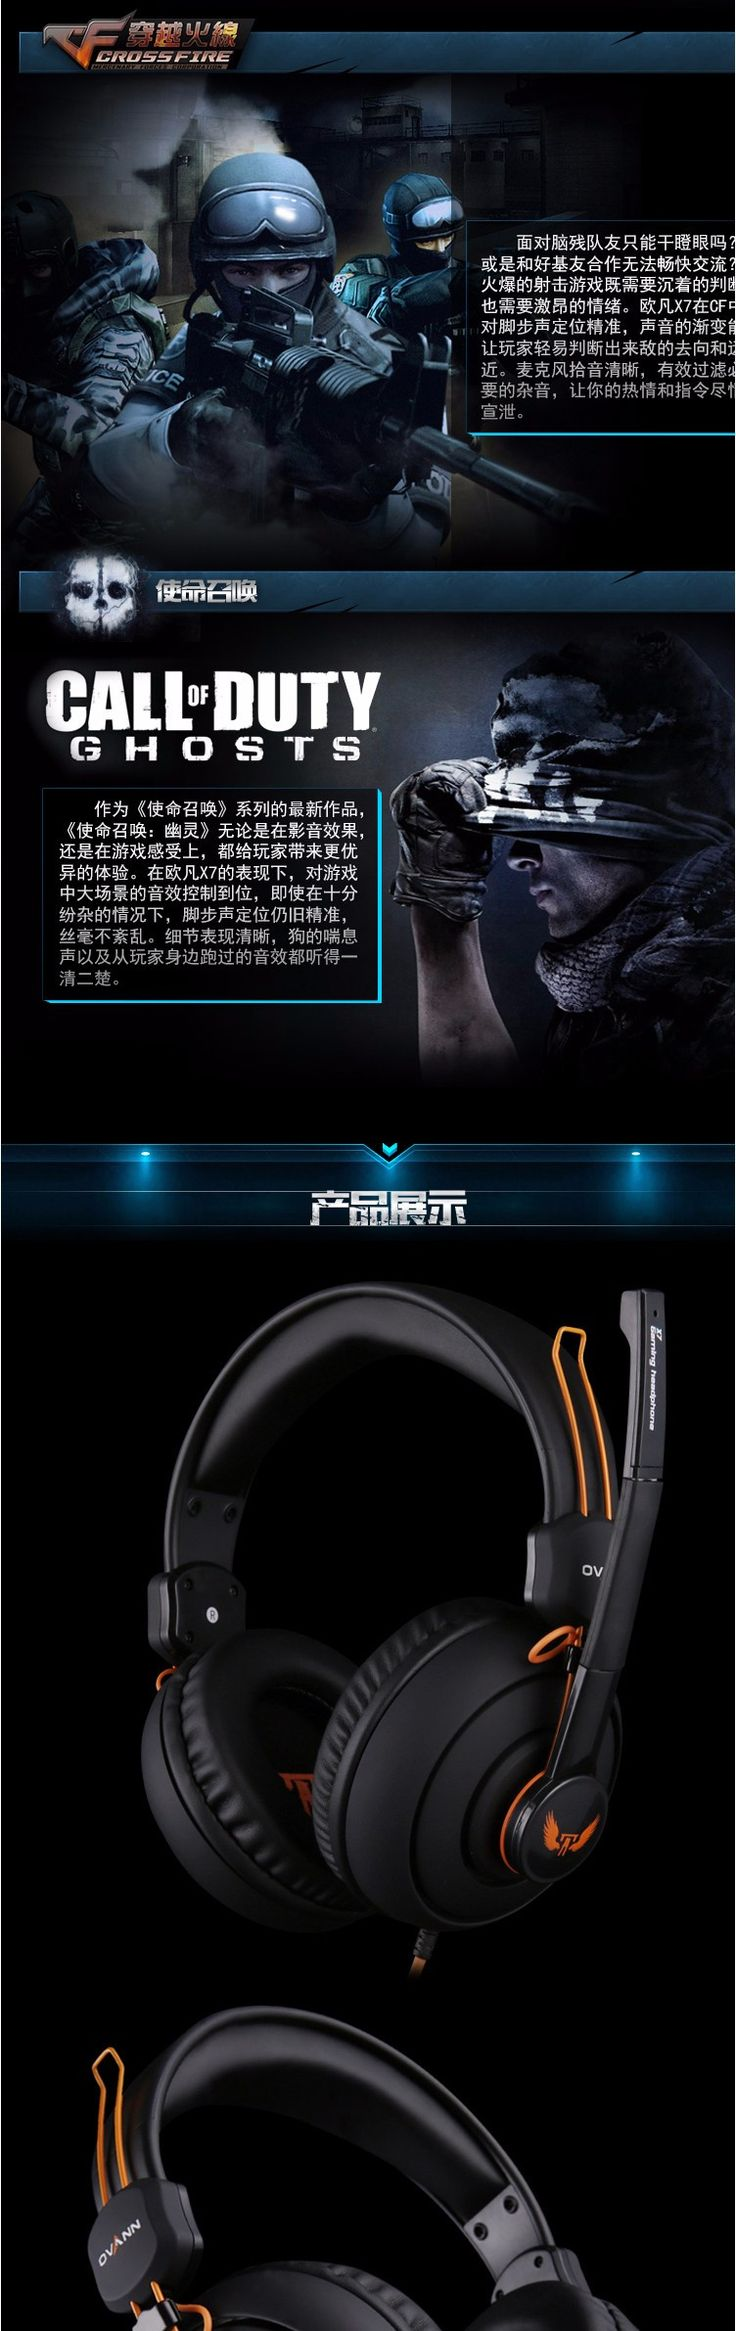 High-end Ovann X7 Casque Audio Professional Gaming Headphones Stereo Noise Canceling with Mic for PC Computer PS4 Headset Gamer | #HeadphonesGaming